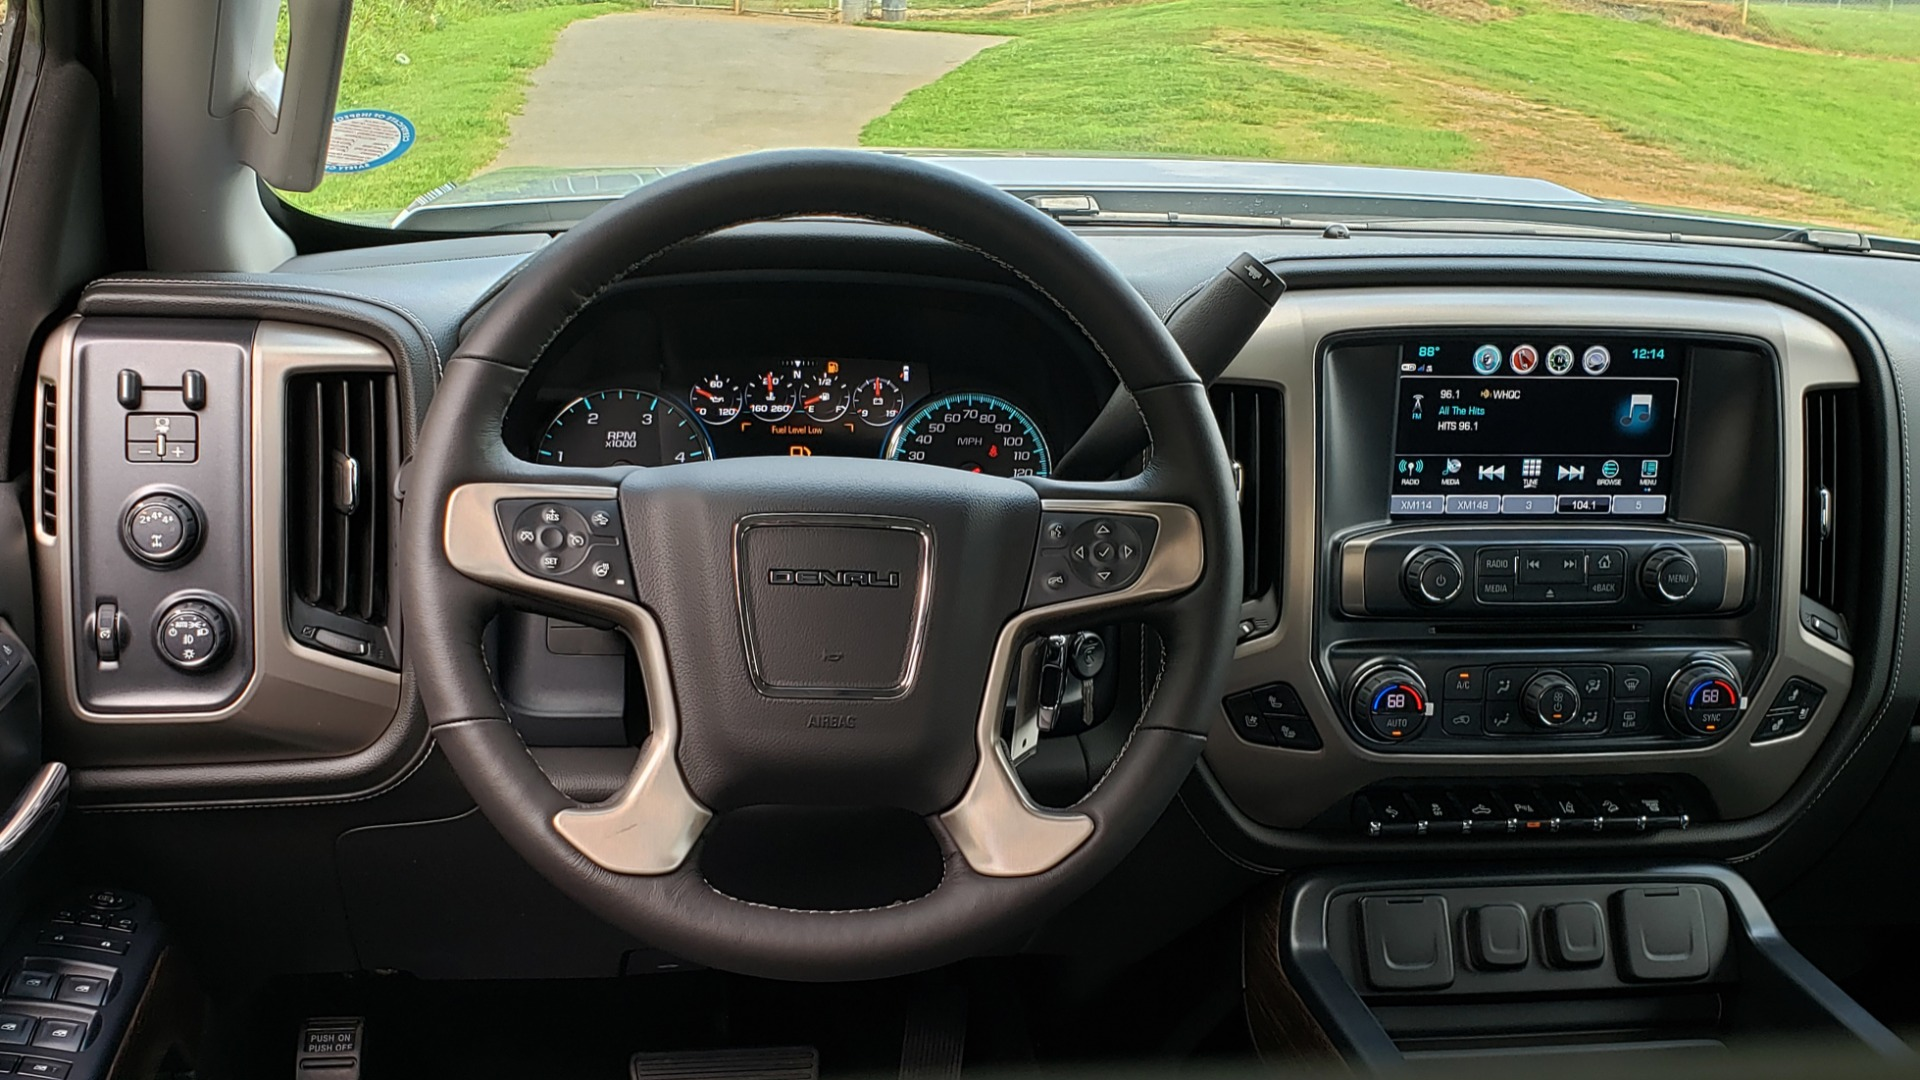 Used 2018 GMC SIERRA 2500HD DENALI 4WD / 6.6L DURAMAX / NAV / SUNROOF / BOSE / REARVIEW for sale Sold at Formula Imports in Charlotte NC 28227 45